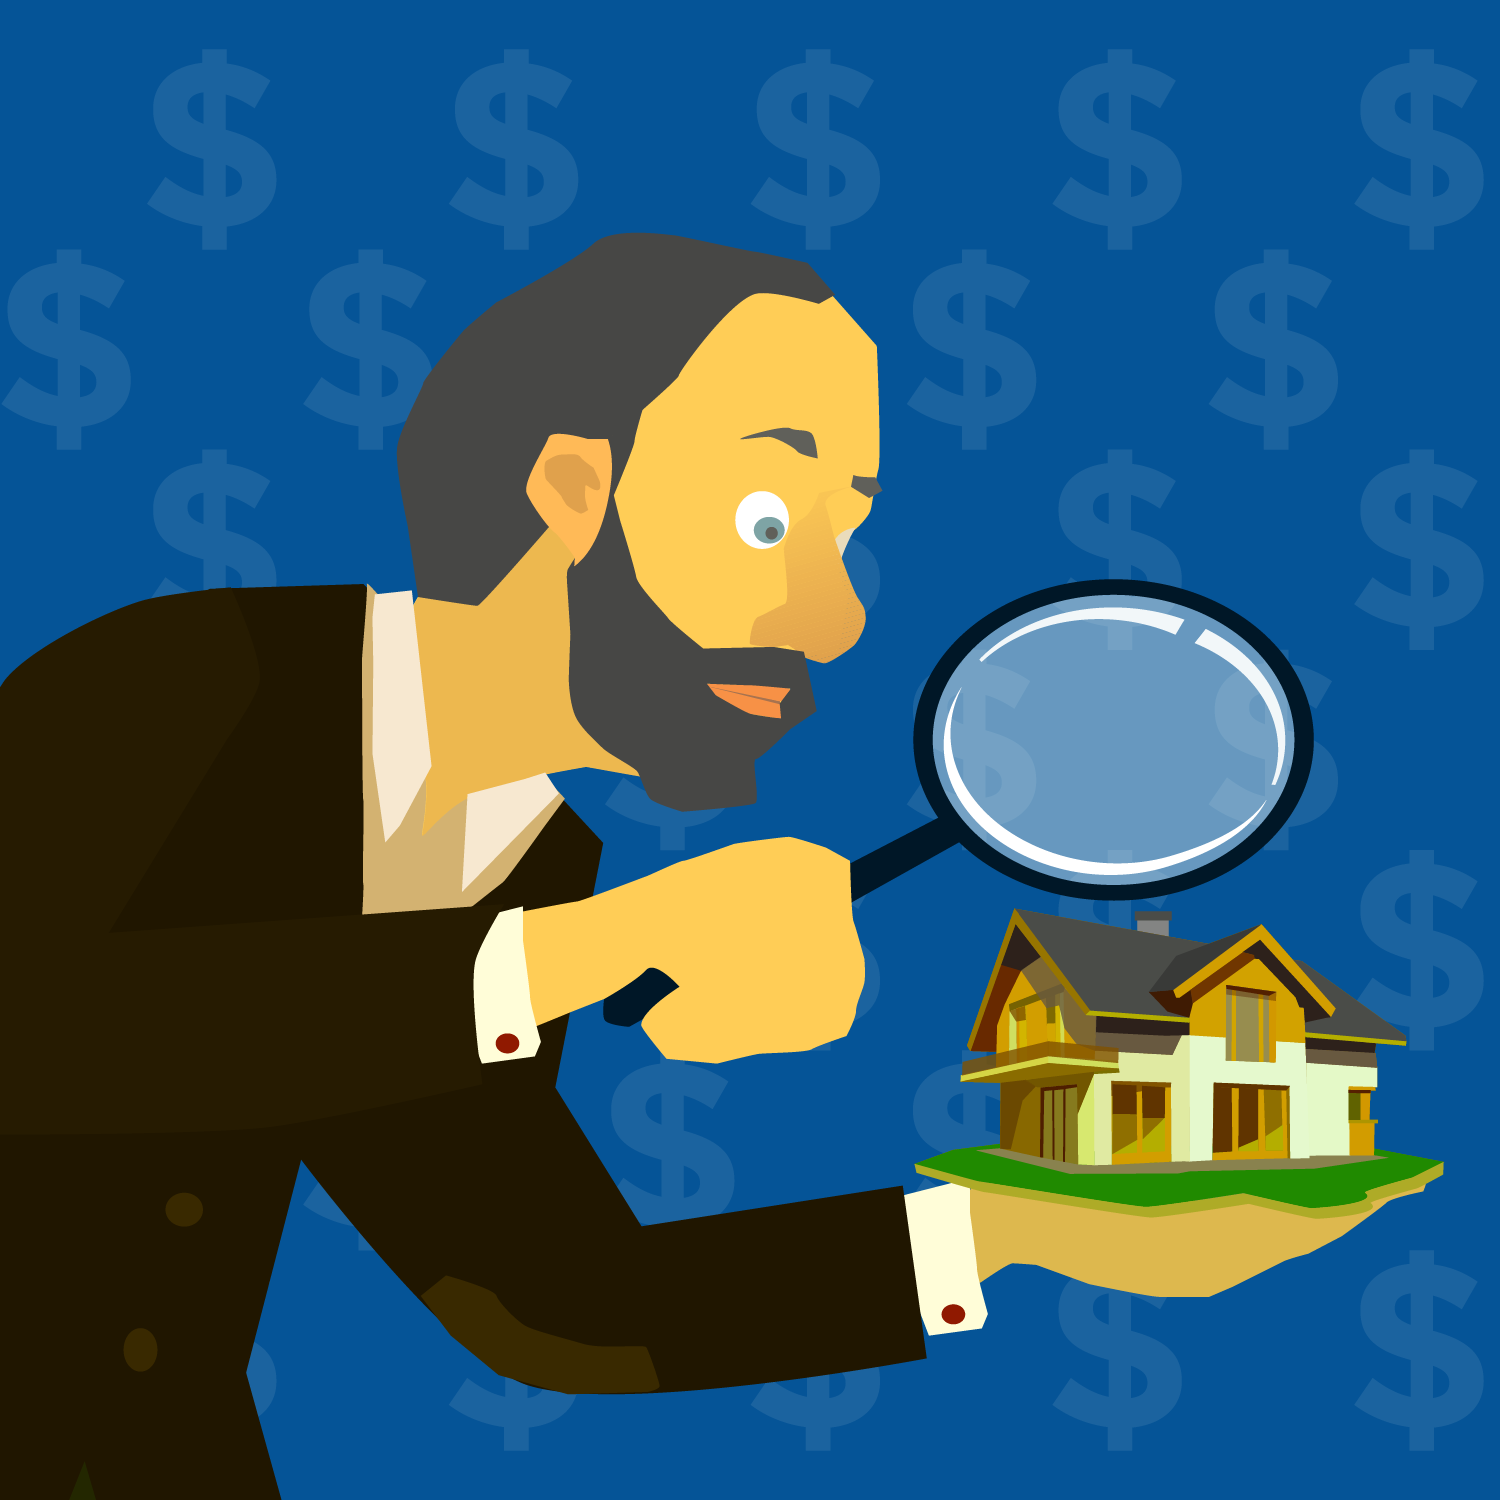 Lender Appraisals: An Appraisal Is An Unbiased Professional Opinion Of A Home